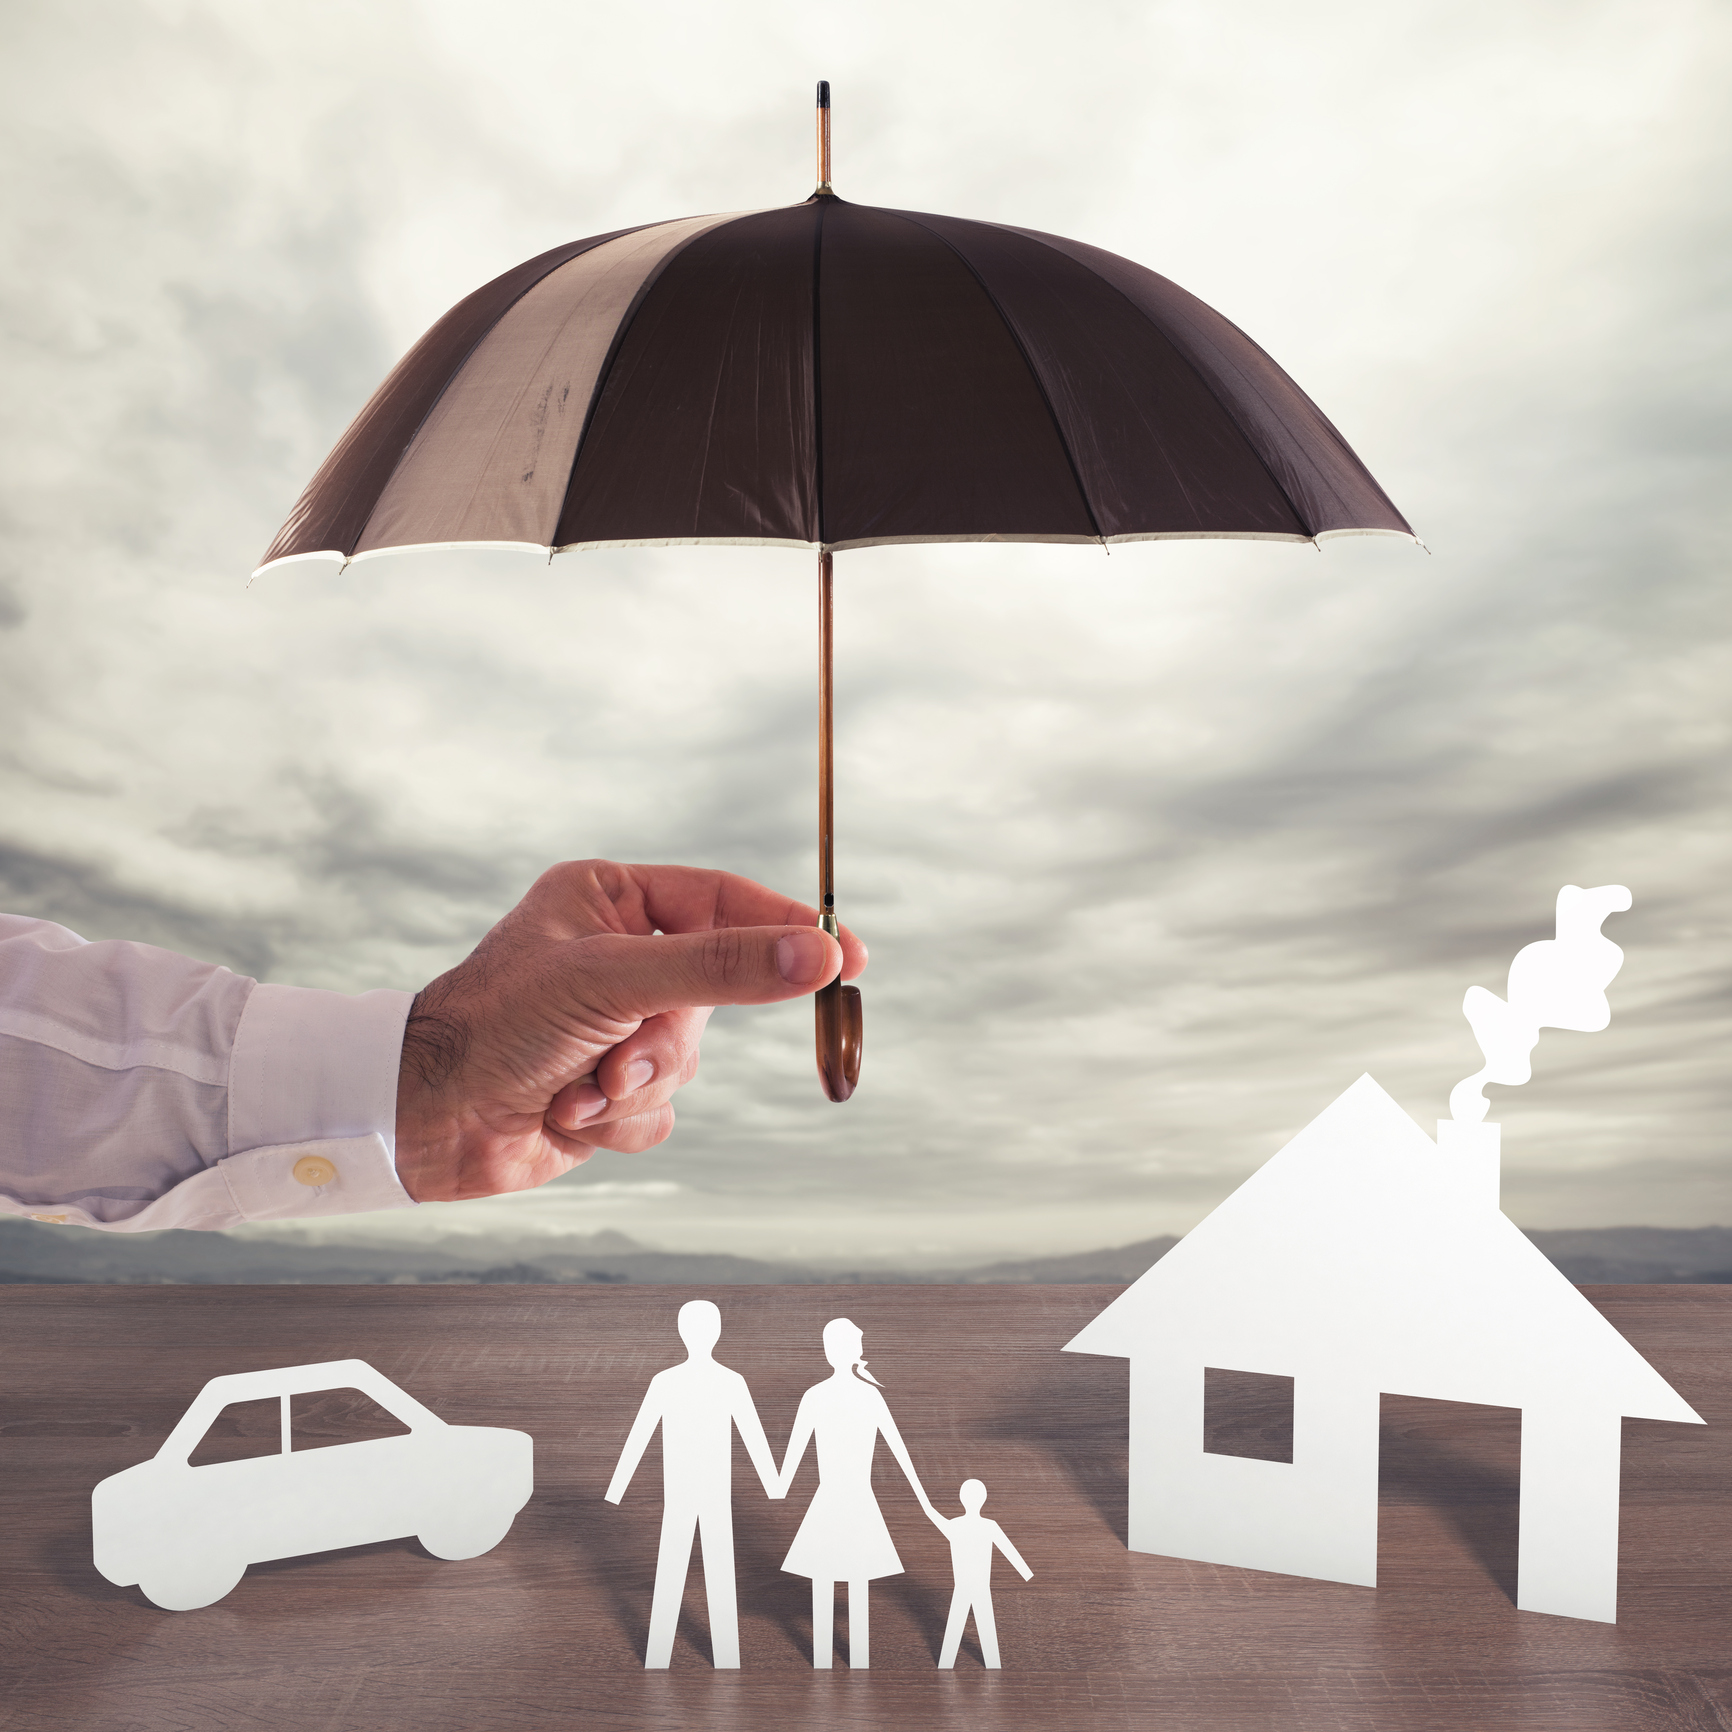 depiction of umbrella insurance